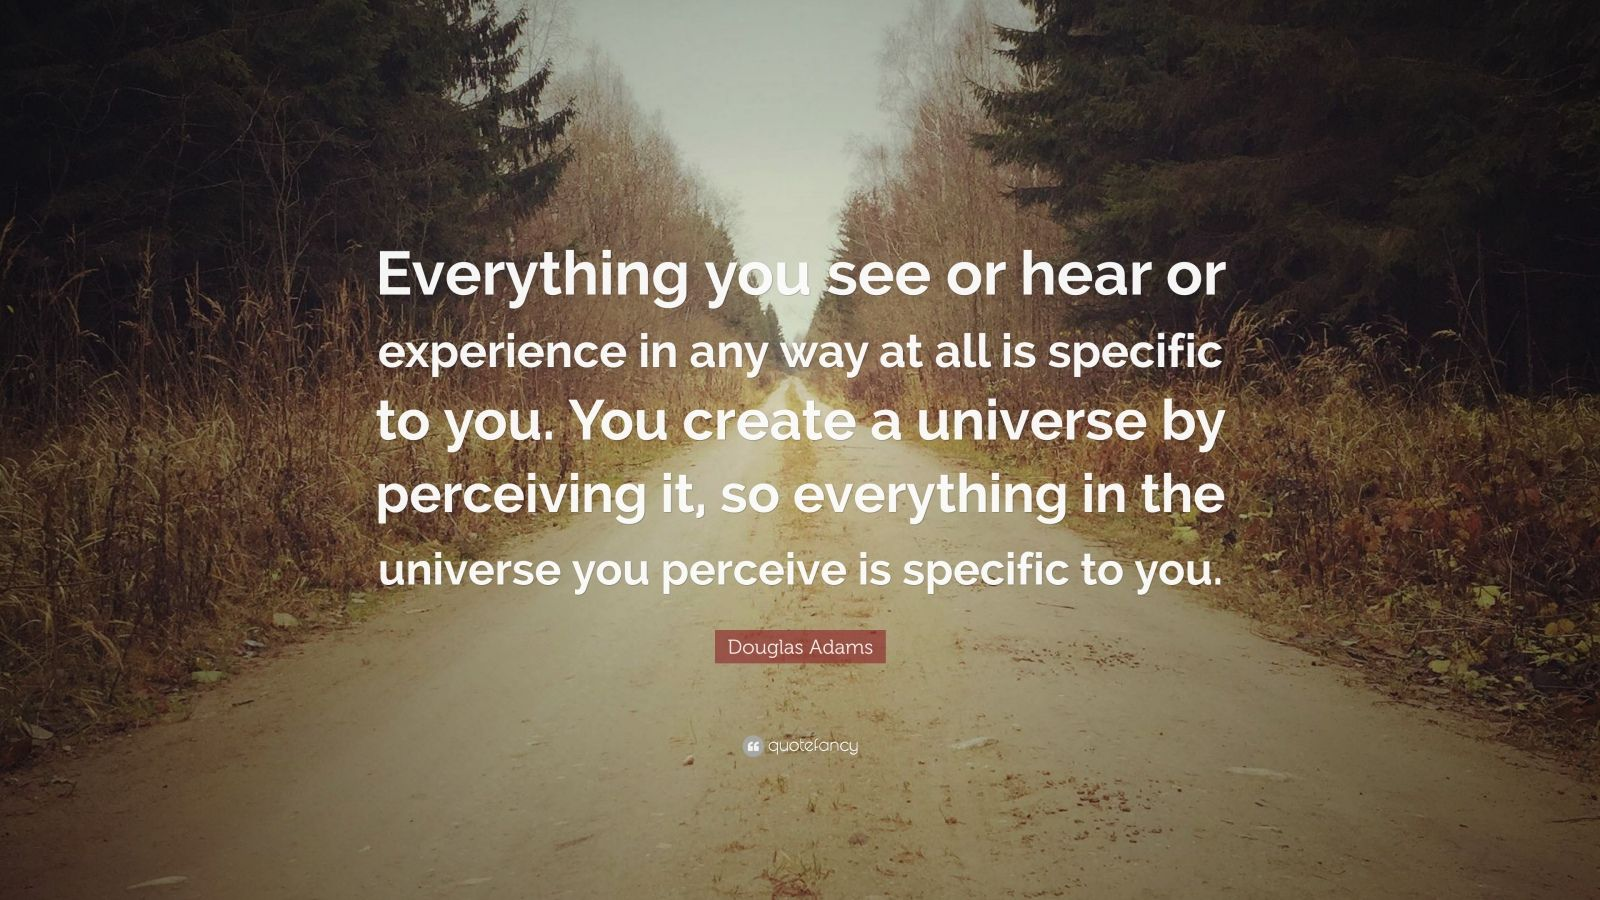 "Douglas Adams Quote: ""Everything you see or hear or experience in any way at all is specific to you. You create a universe by perceiving it, so everything in the universe you perceive is specific to you."""